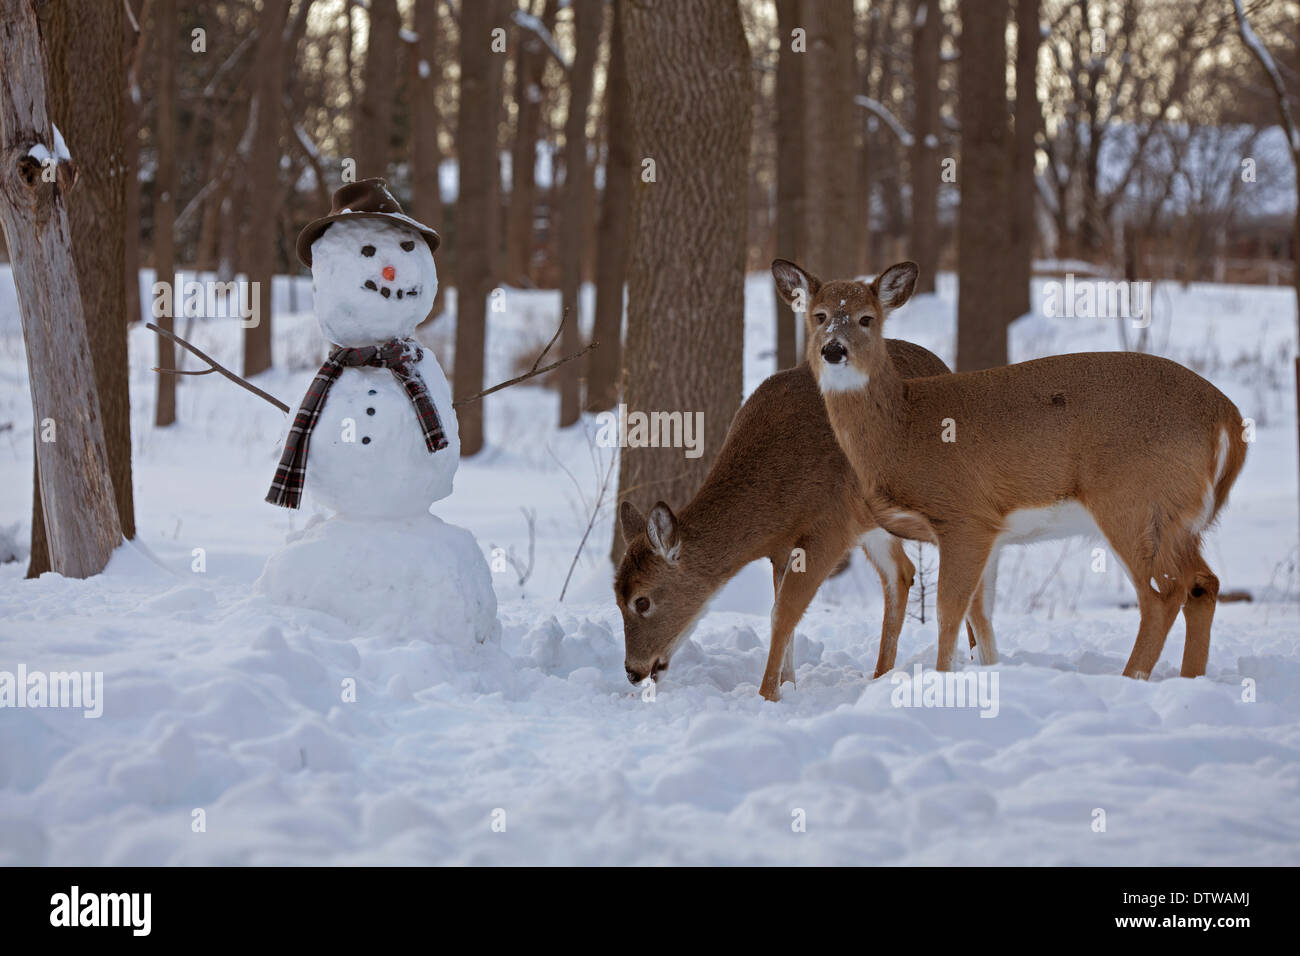 White-tailed deer , Odocoileus virginianus, New York, USA, with snowman, background may have digital retouching - Stock Image